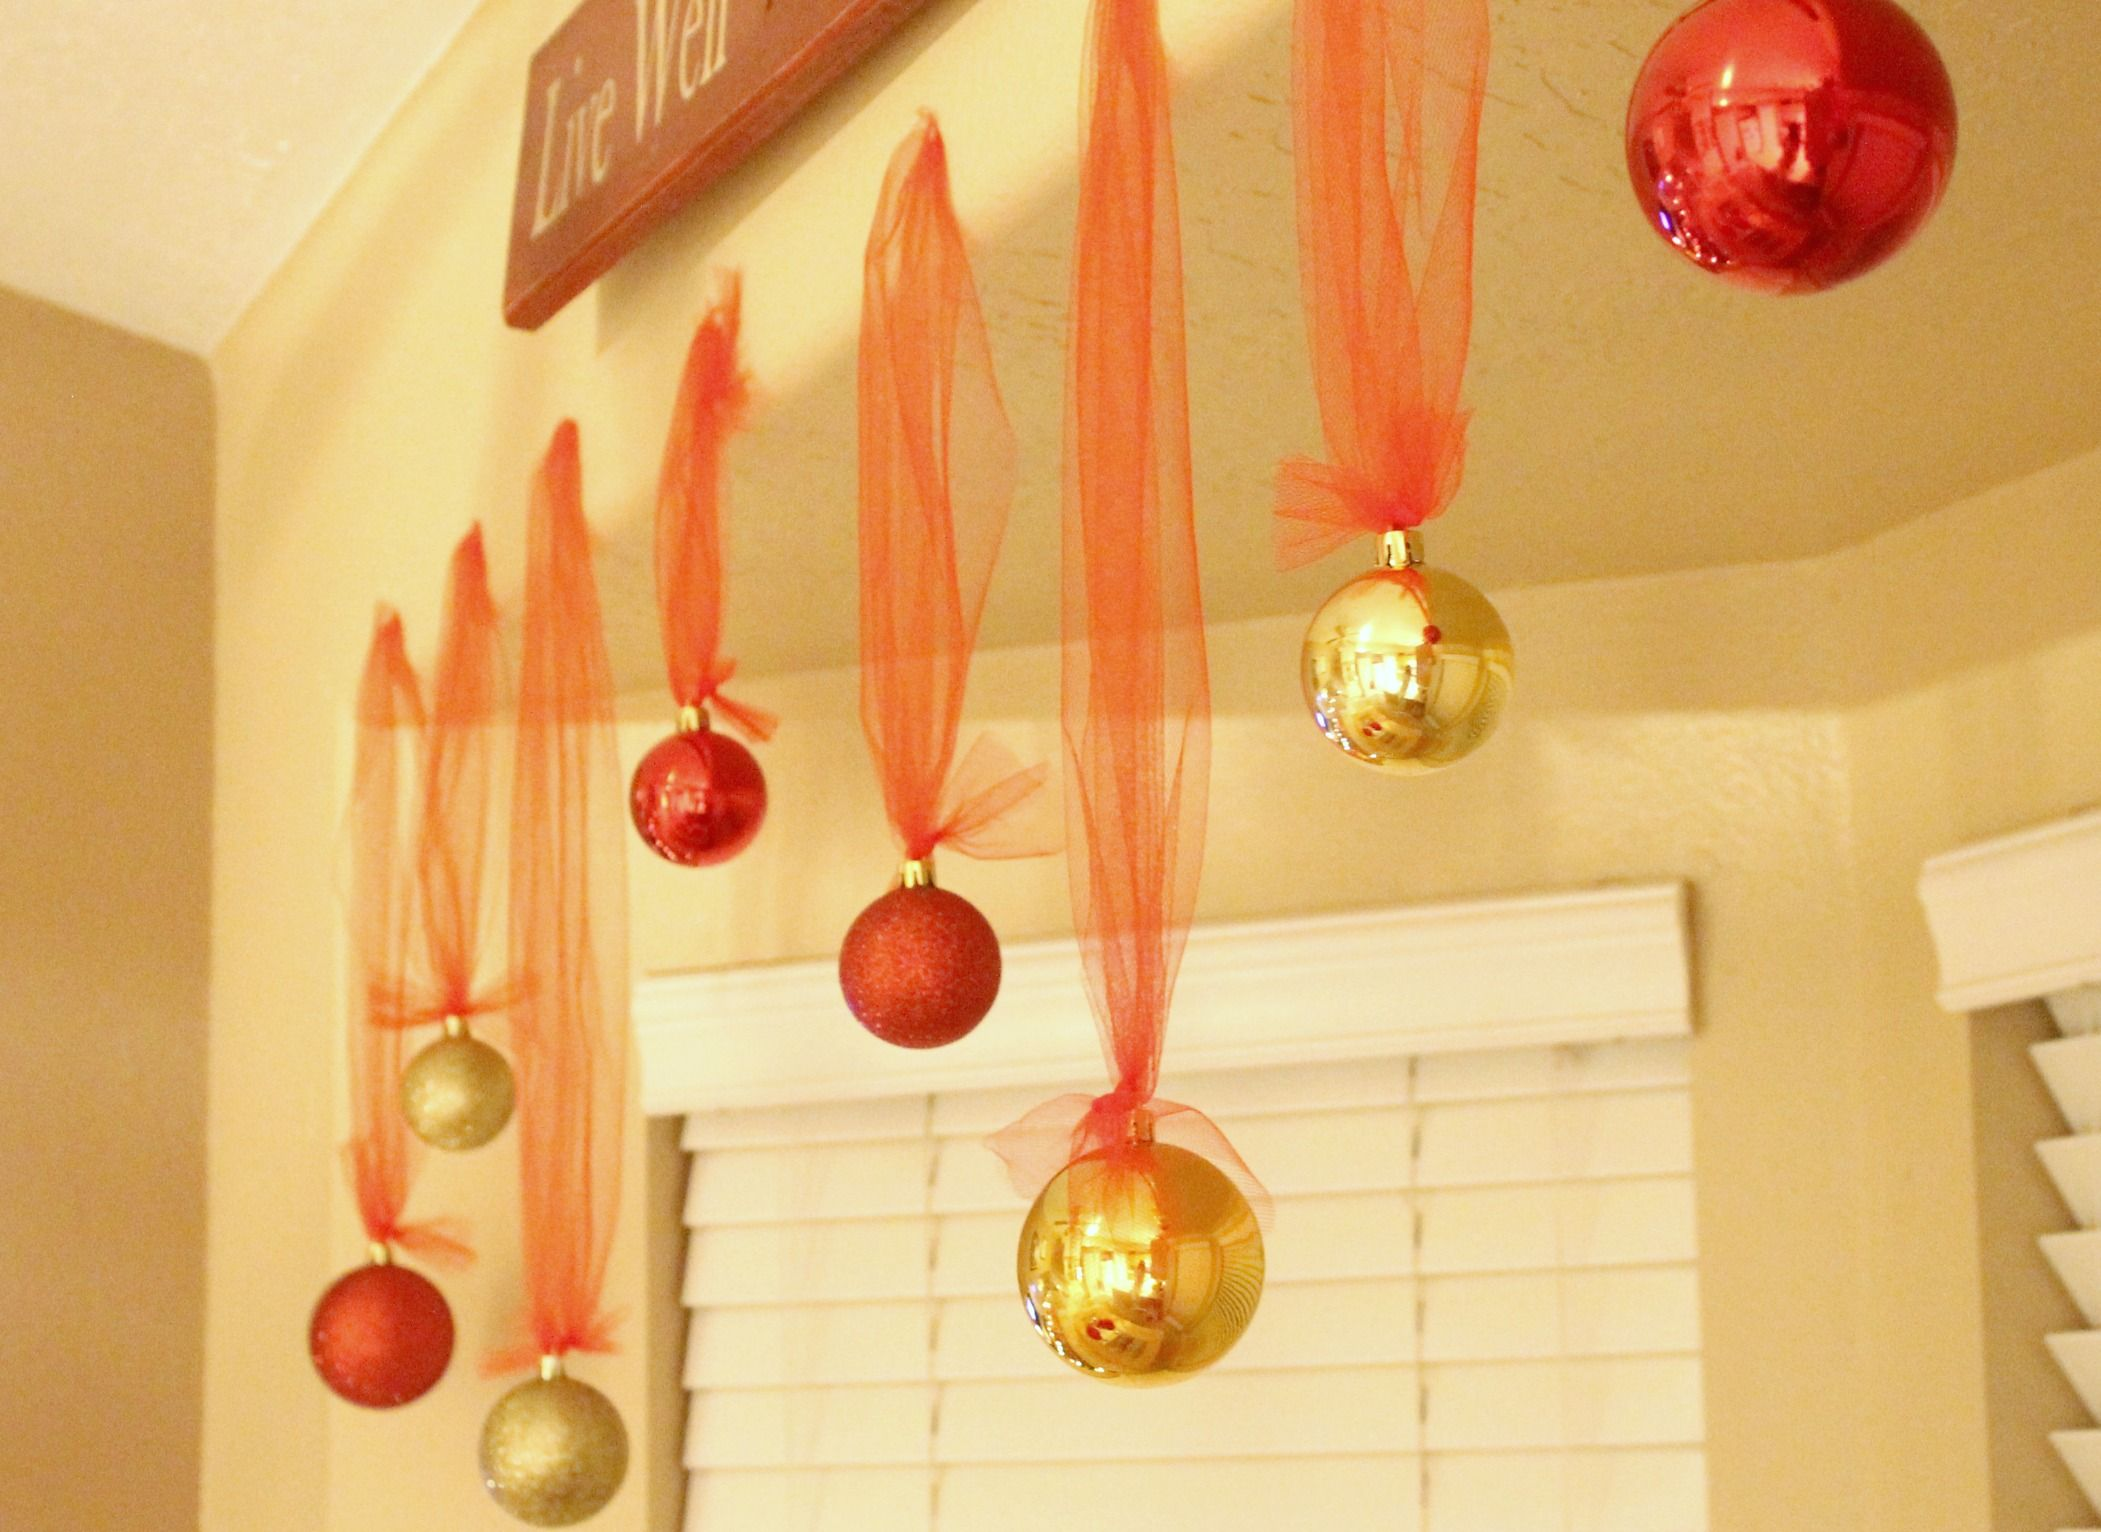 Hanging Christmas Decorations Diy.Hanging Christmas Ornaments Christmas Christmas Balls